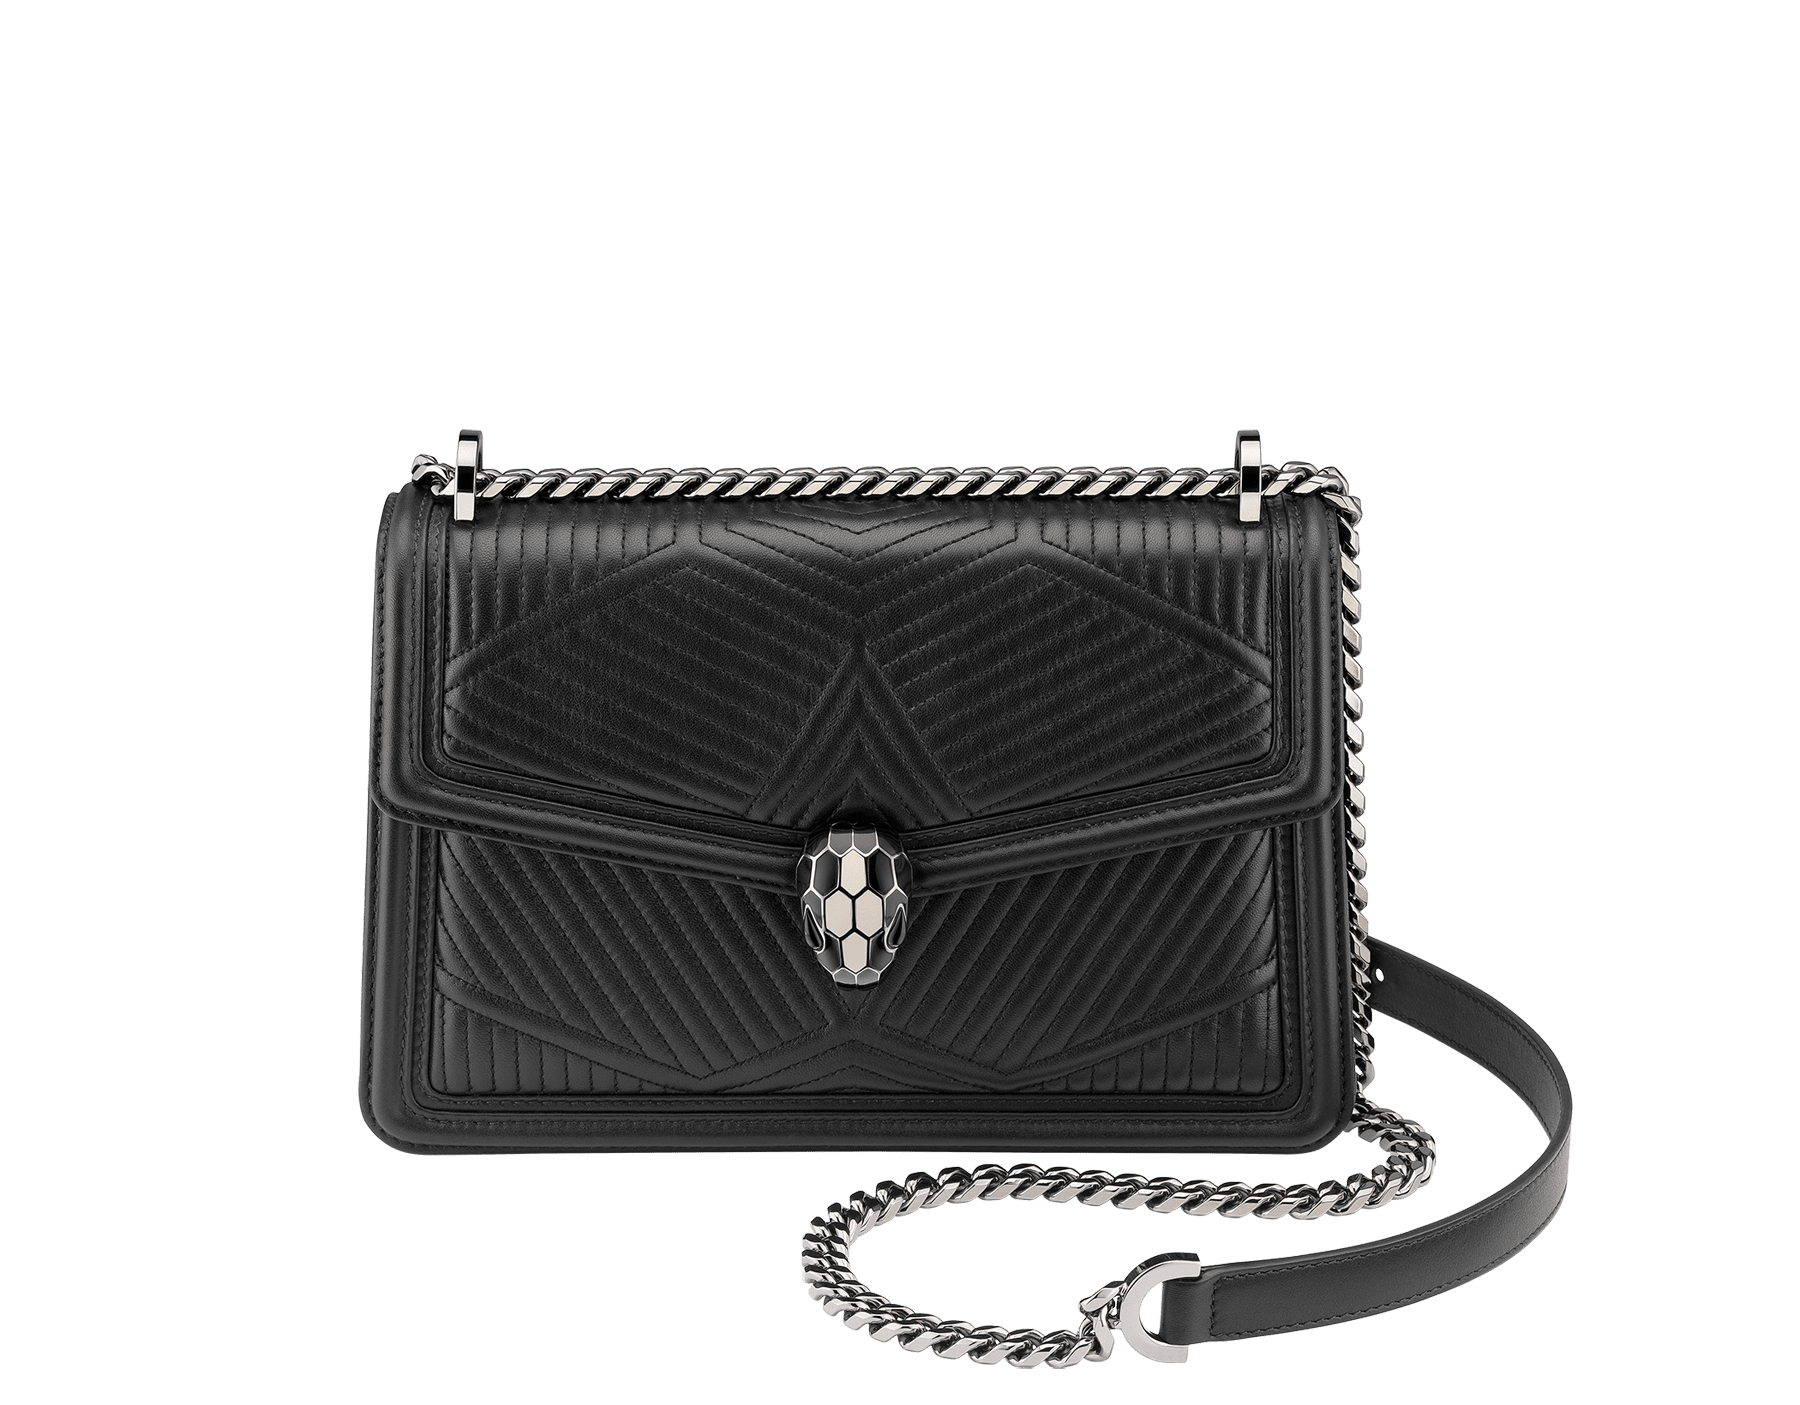 """Serpenti Diamond Blast"" shoulder bag in black quilted nappa leather body and black calf leather frames. Iconic snakehead closure in dark ruthenium plated brass enriched with black and white enamel and black onyx eyes. 287371 image 2"